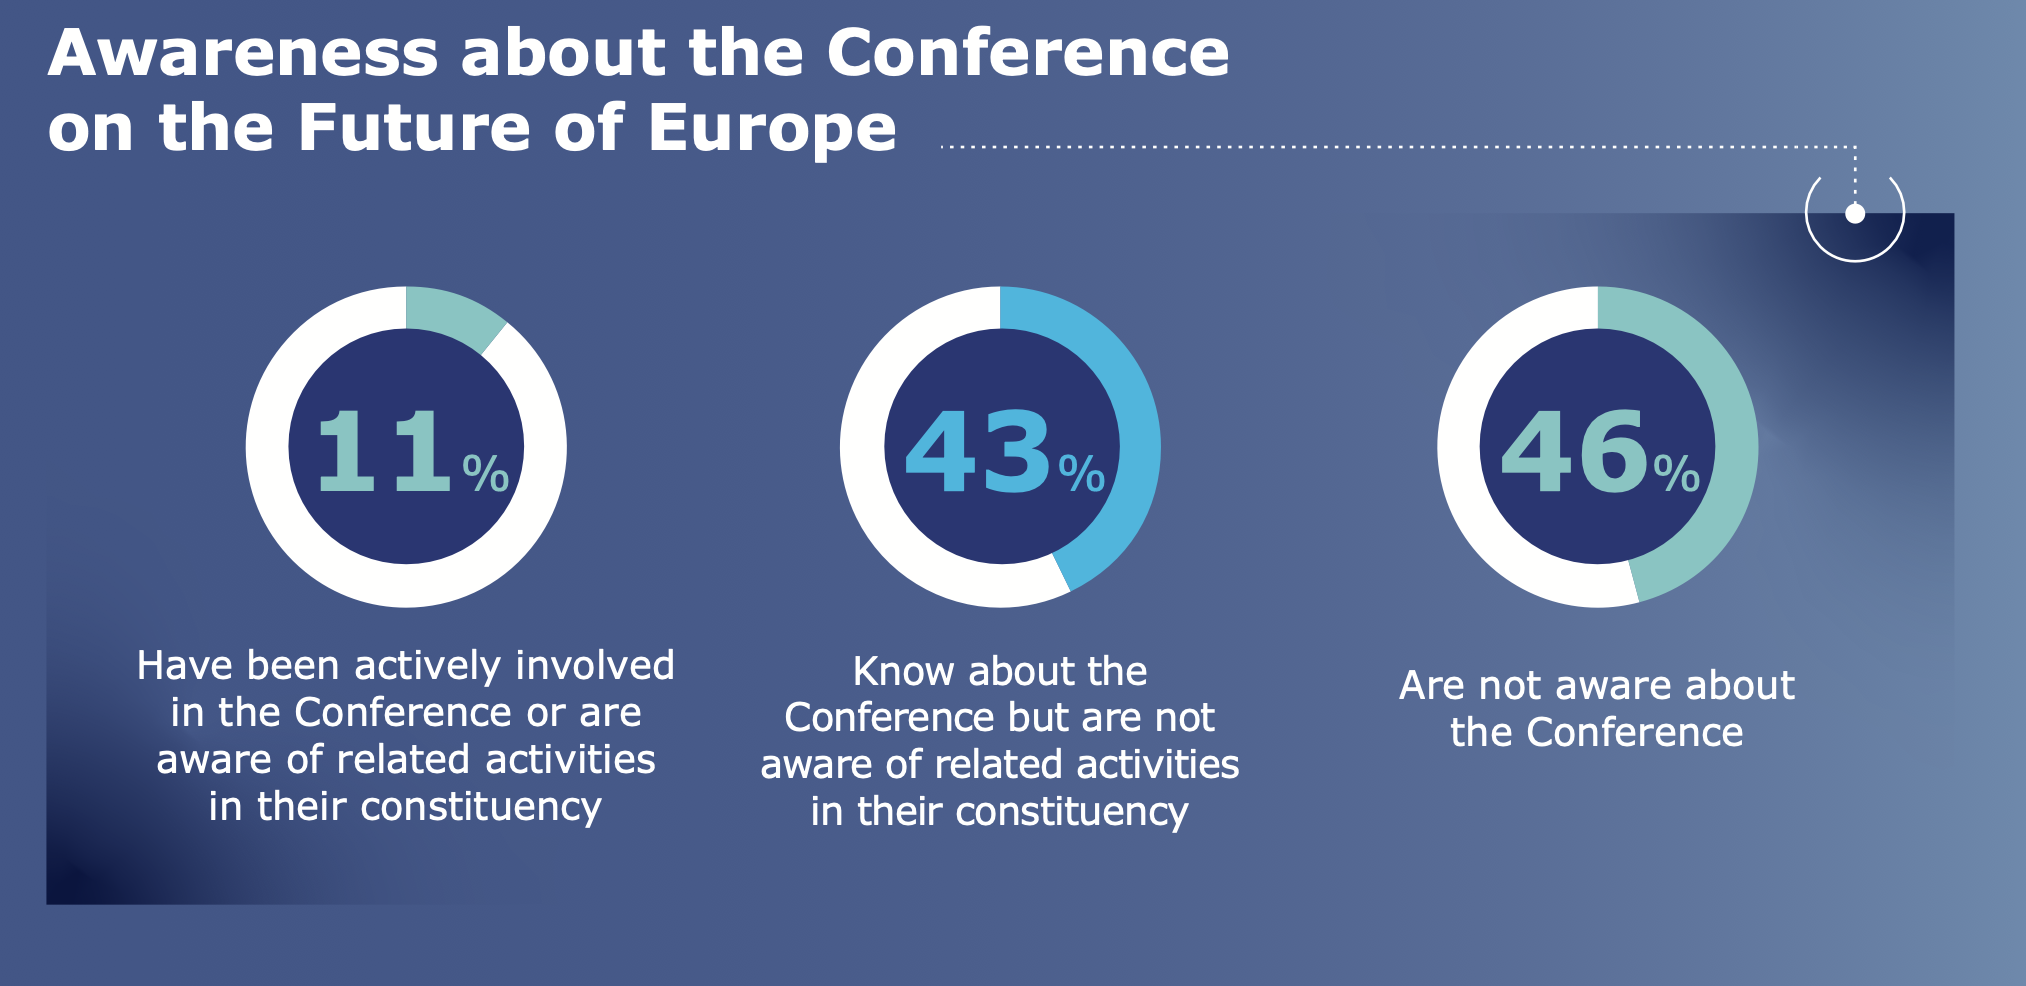 Grafische Übersicht über Umfrageergebnisse. Text: Awareness about the Conference on the Future of Europe. 11% have been actively involved in the Conference or are aware of related activities in their constituency. 43% know about the Conference but are not aware of related activities in their constituency. 46% are not aware about the Conference.